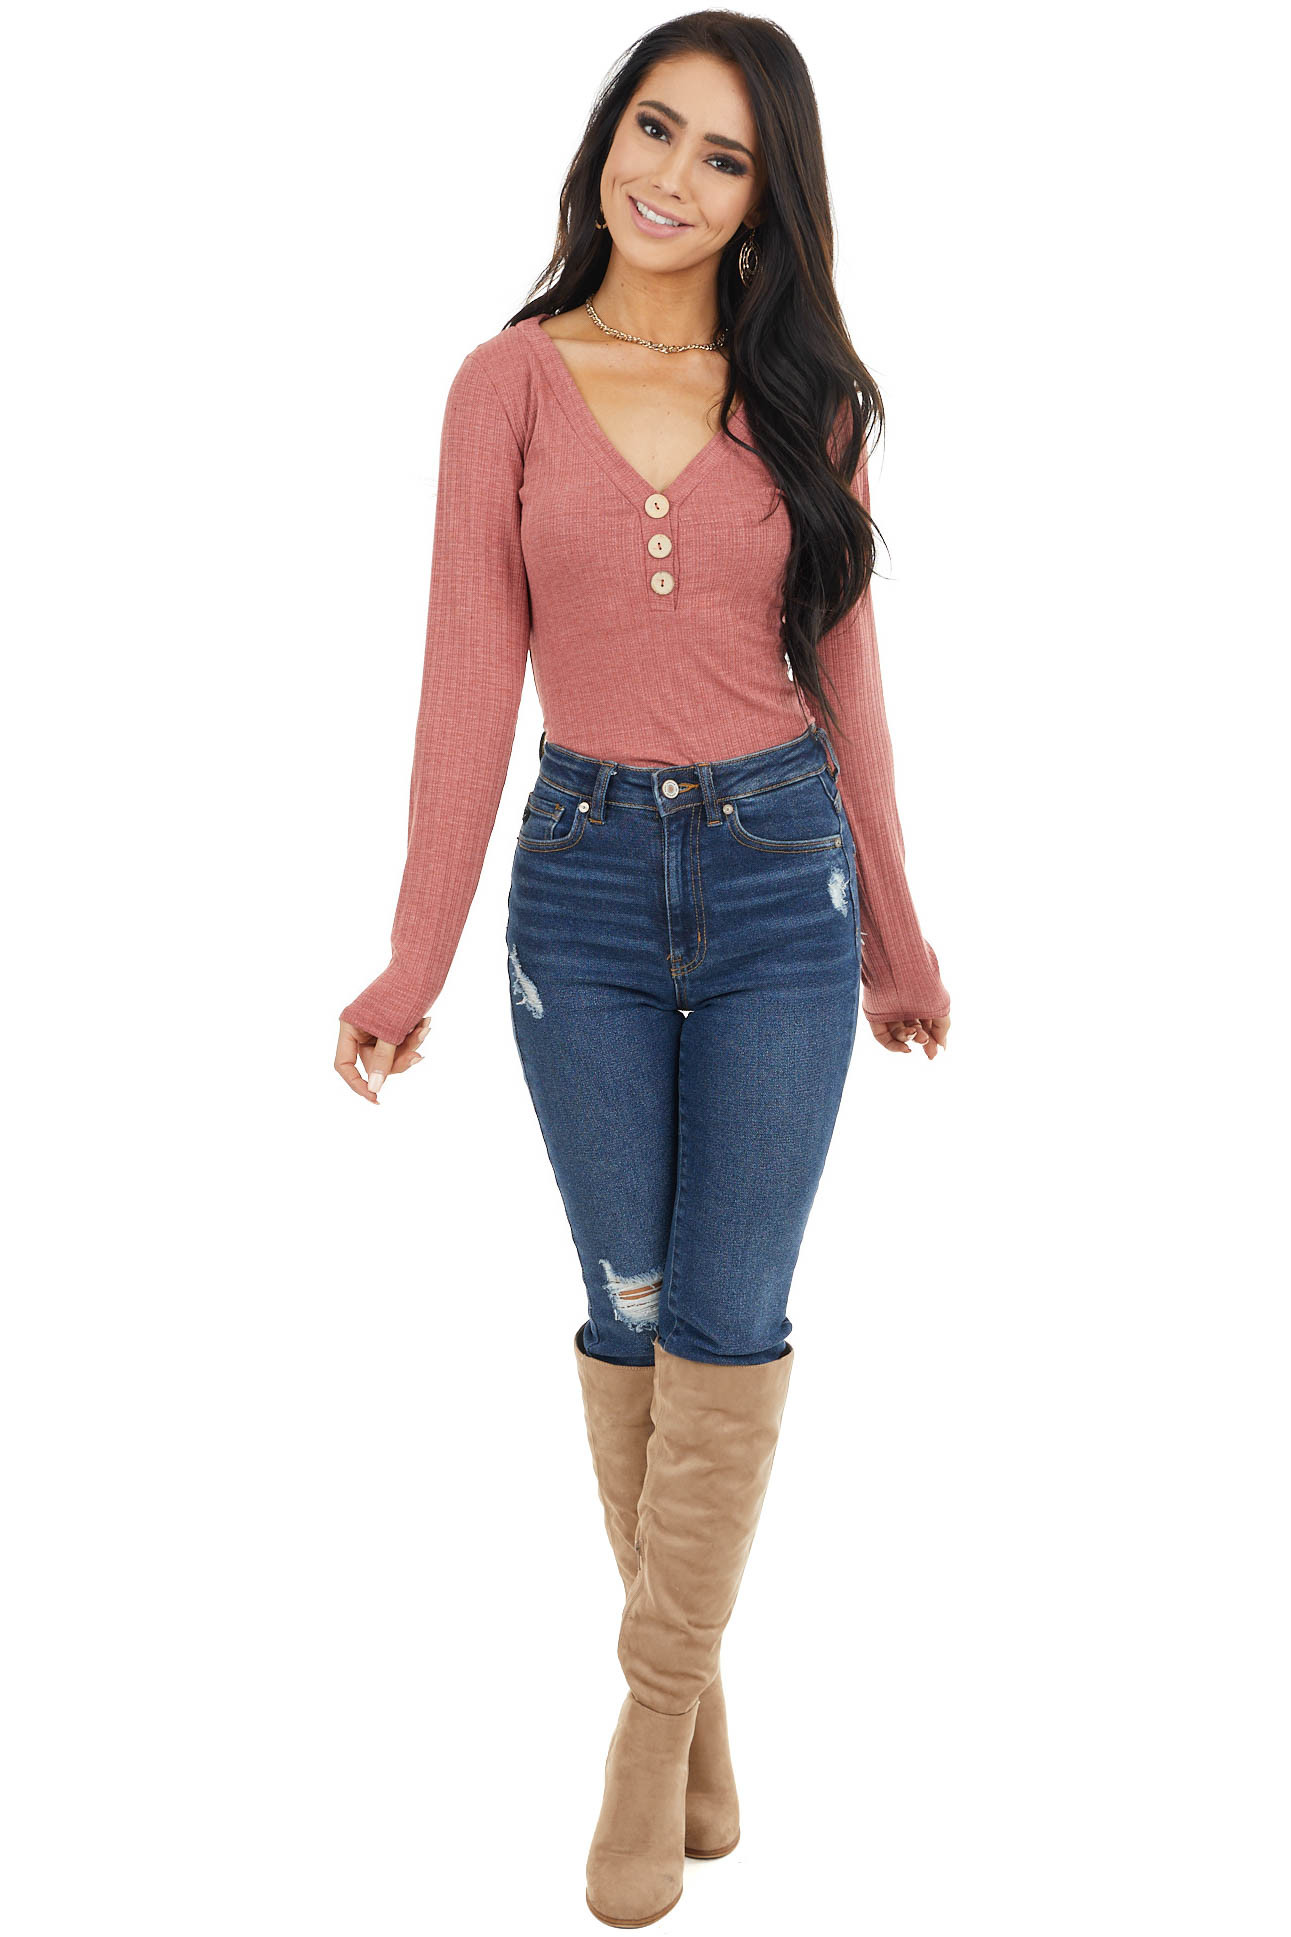 Dusty Marsala Long Sleeve Knit Bodysuit with Button Detail